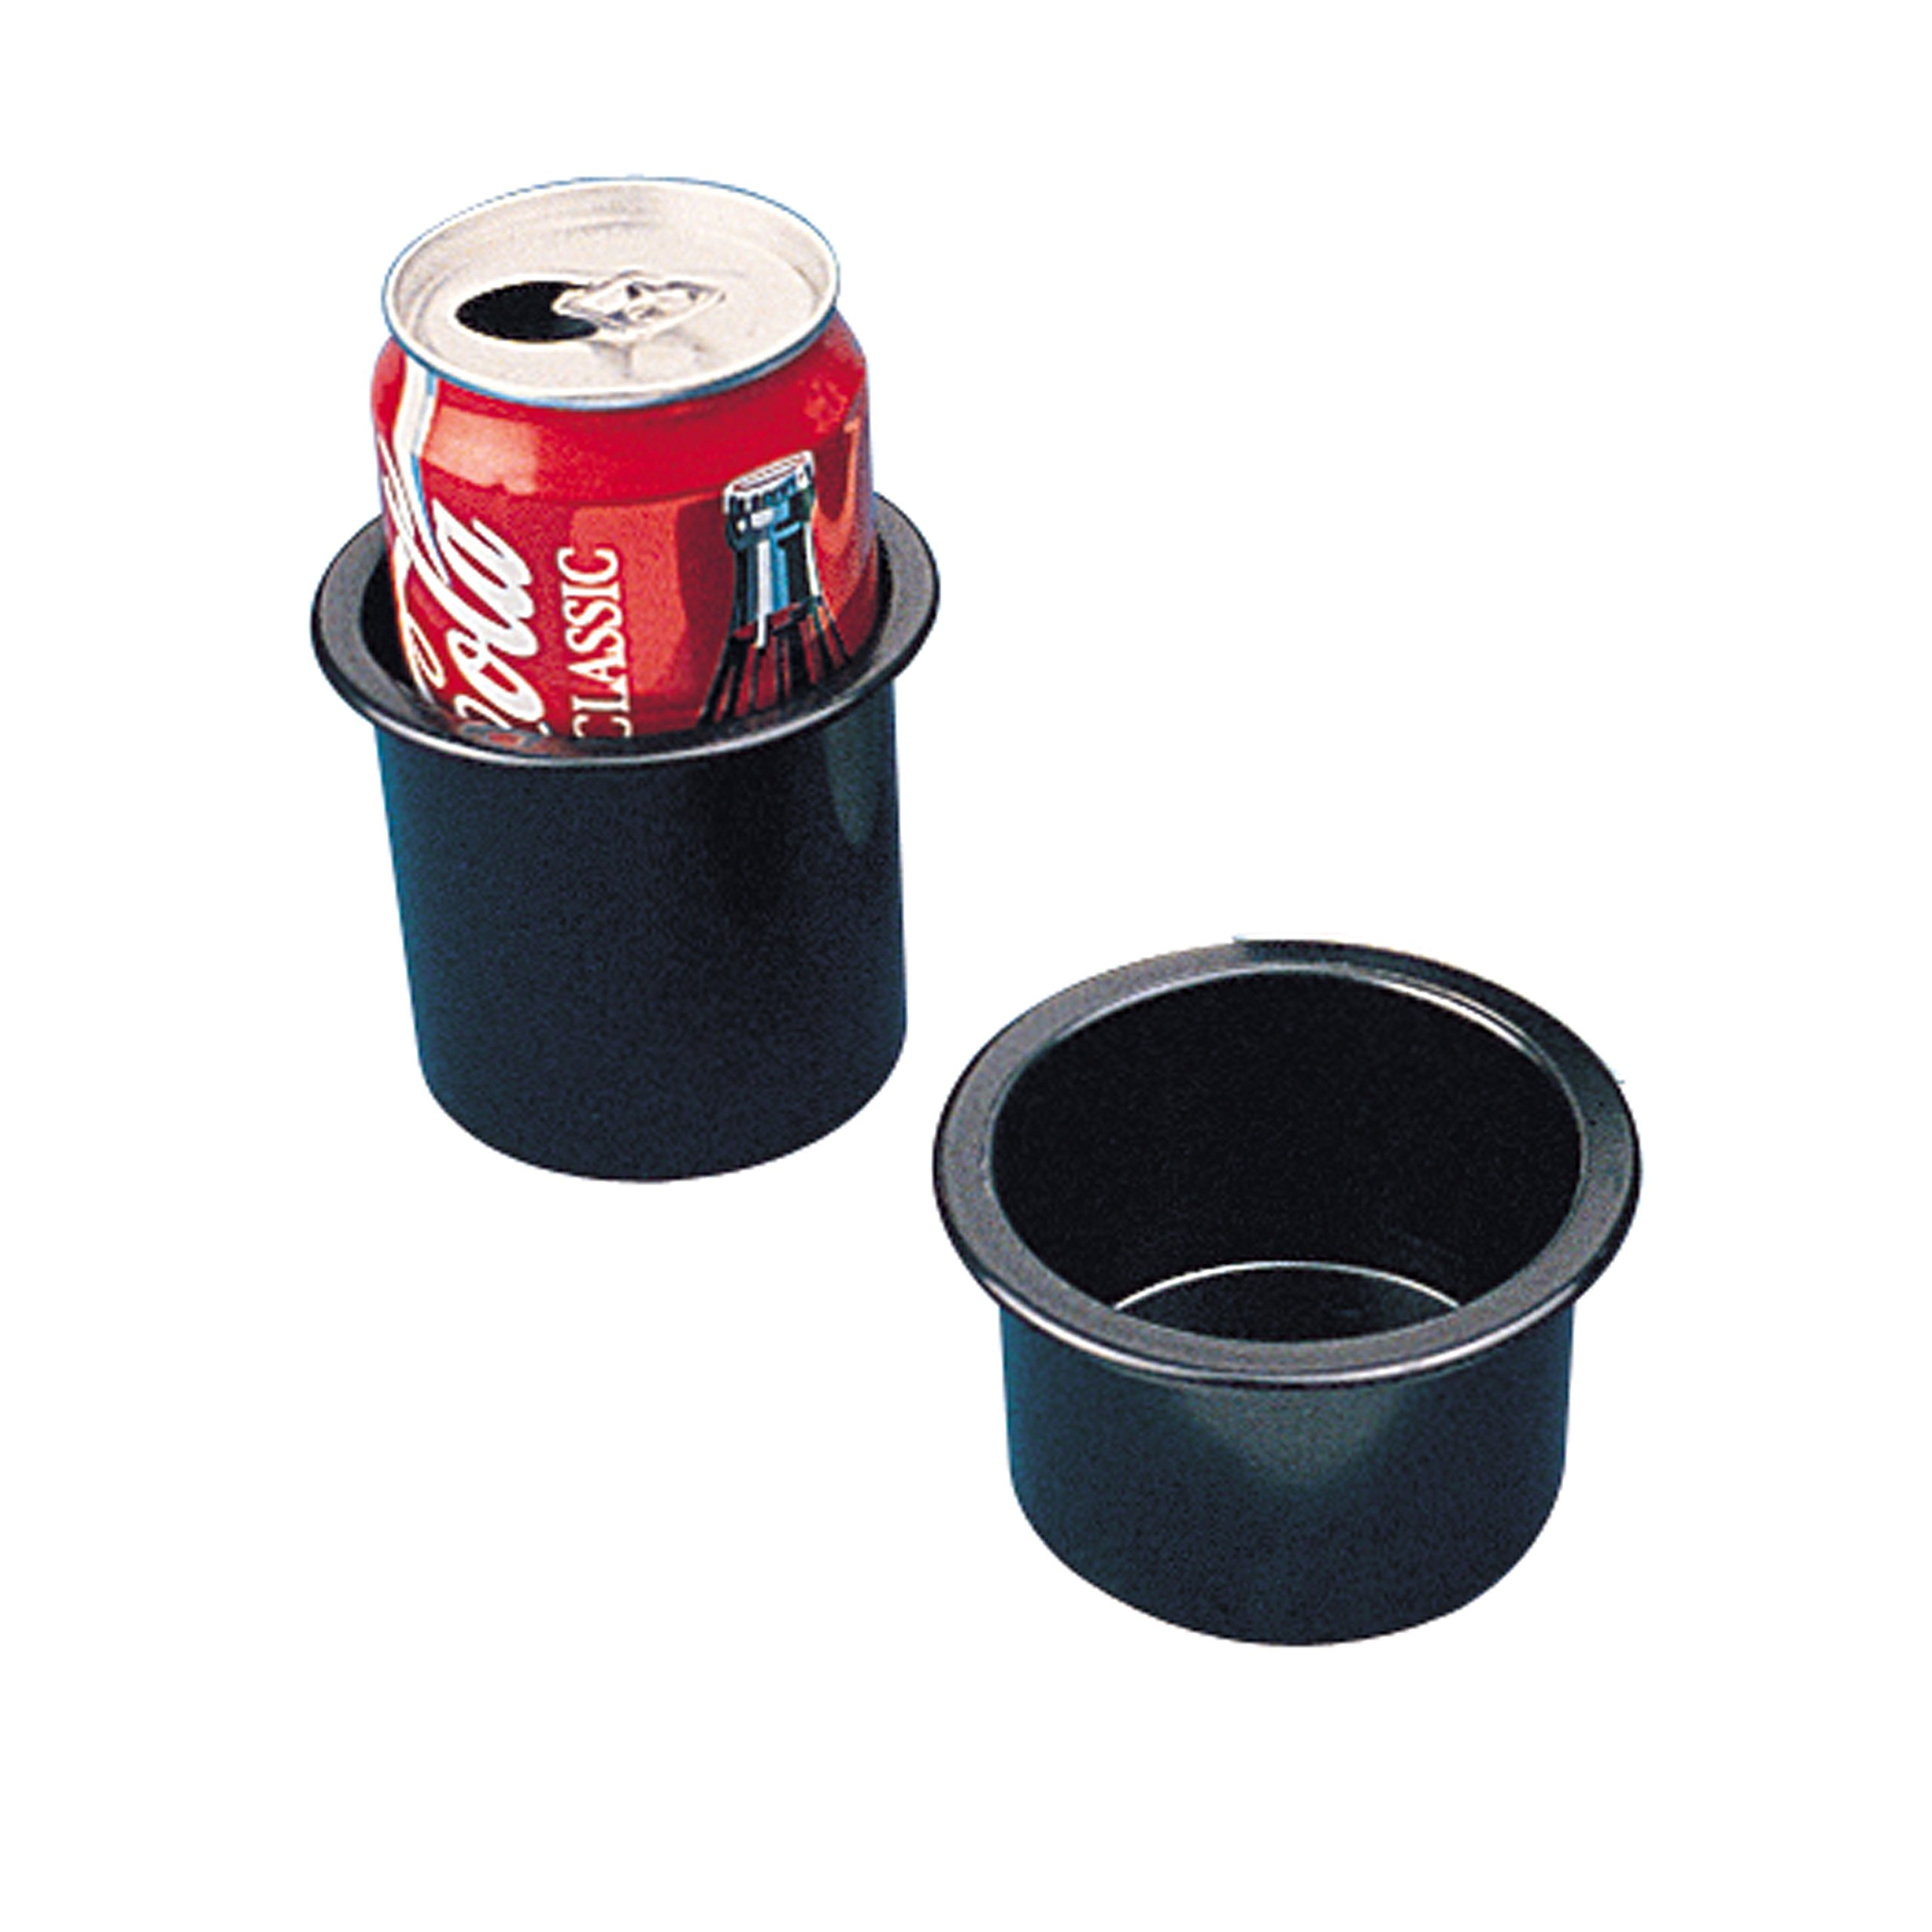 Sea-Dog 588000 Flush Mount Drink Holder, 2'' Deep - Black